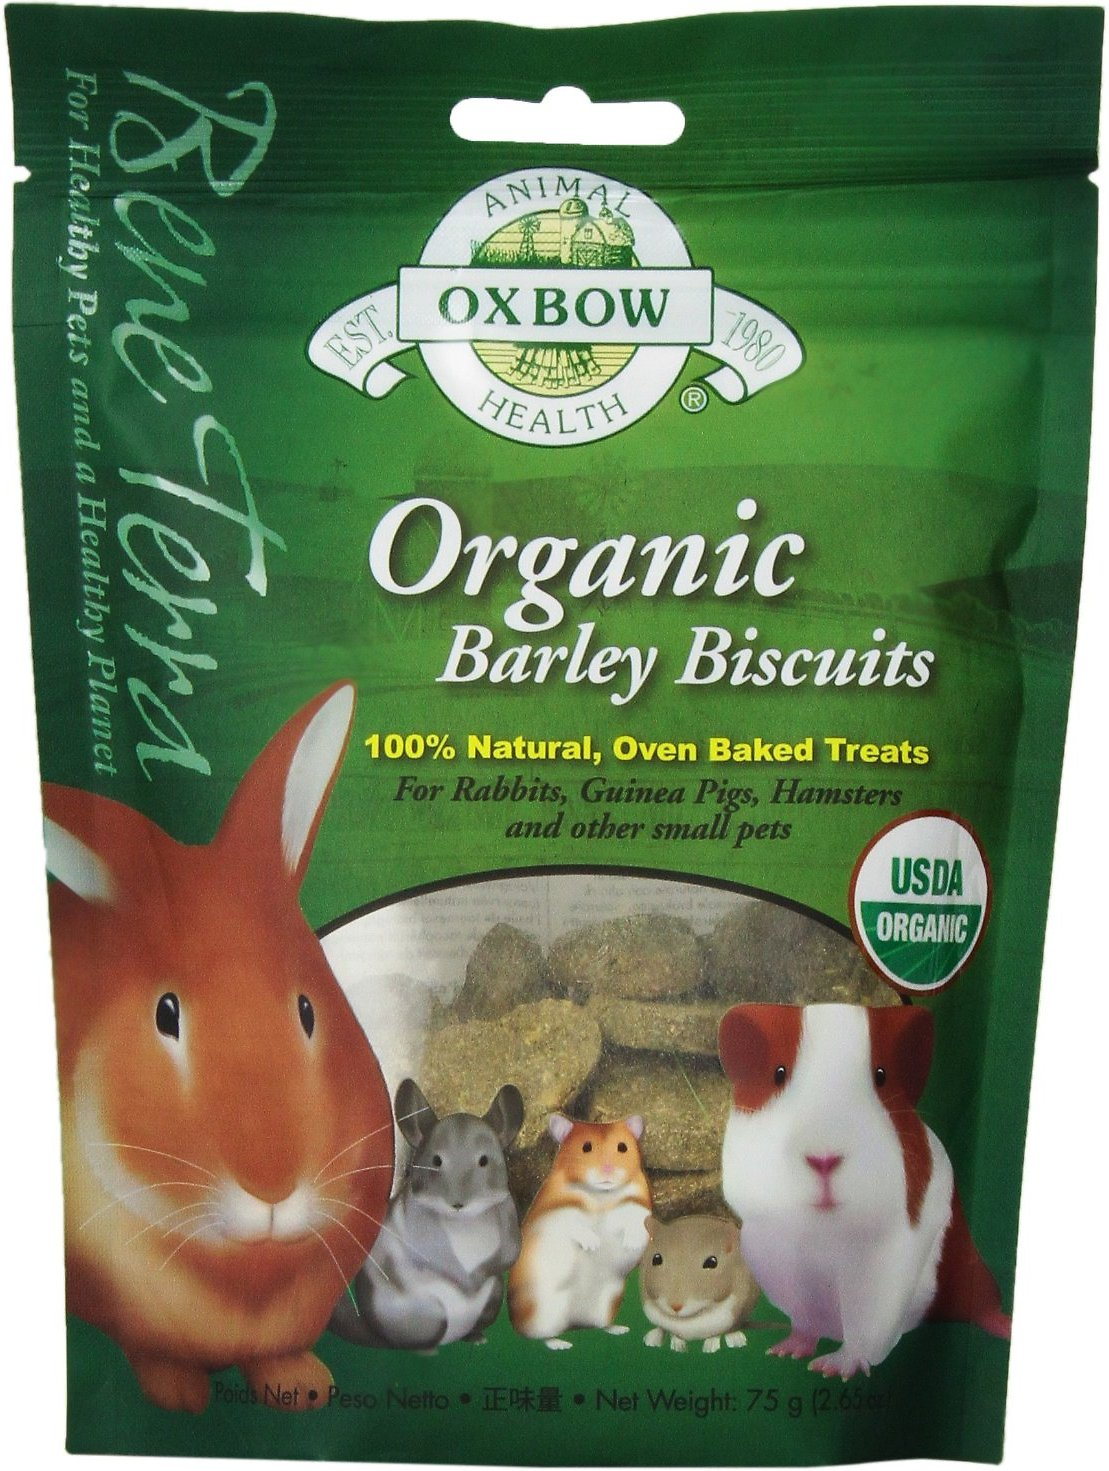 Oxbow Bene Terra Organic Barley Biscuits Small Animal Treats, 2.65-oz bag Image